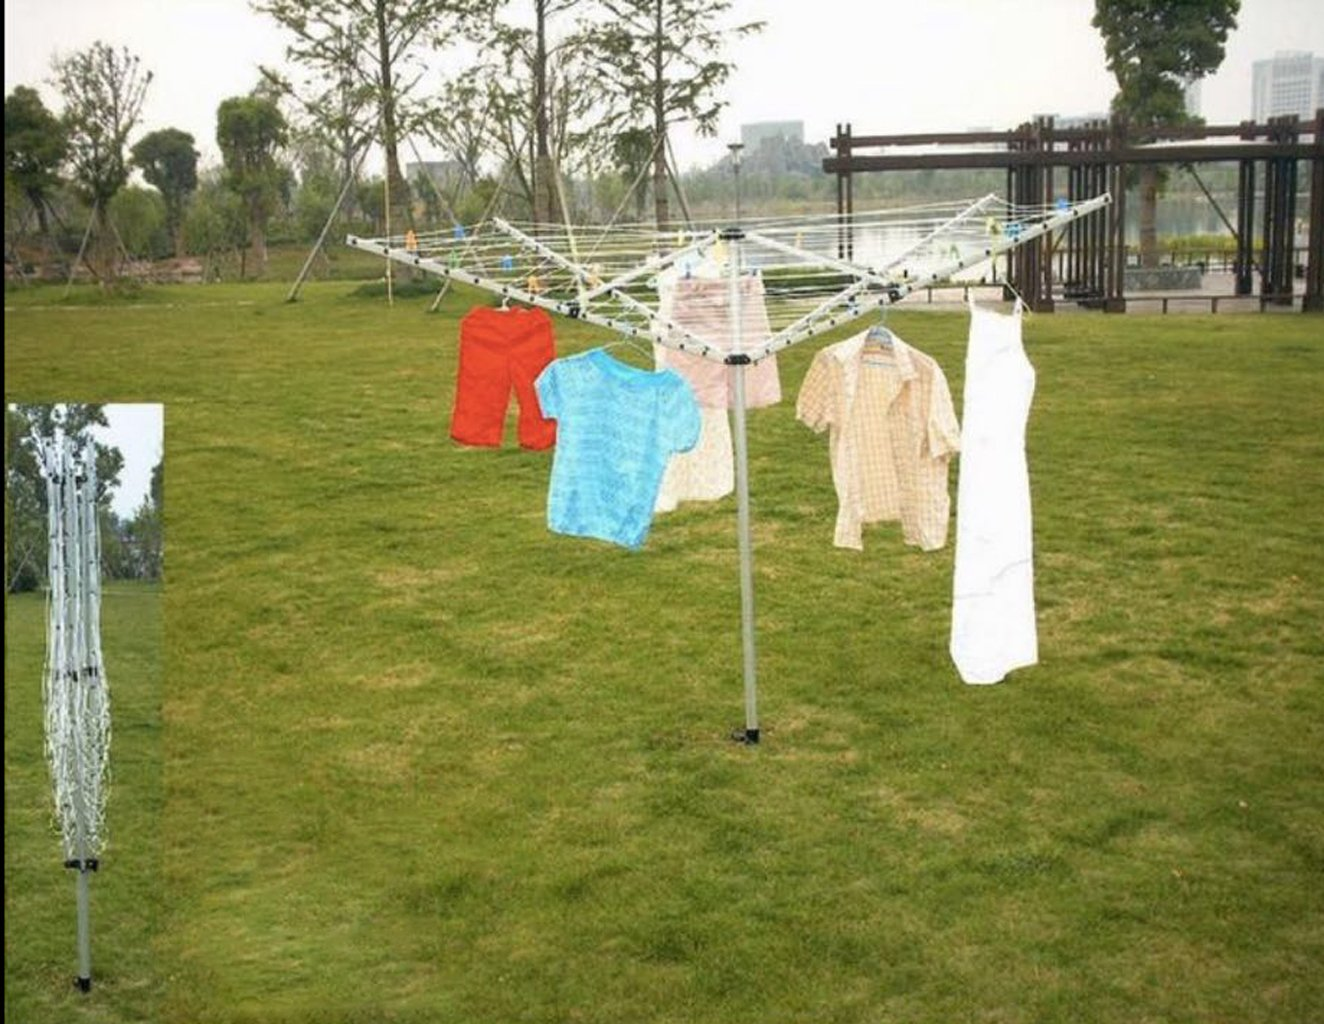 Clothes Airer Portable Rotary Washing Line 4 Arm Free Standing Multi Laundry UK Stock